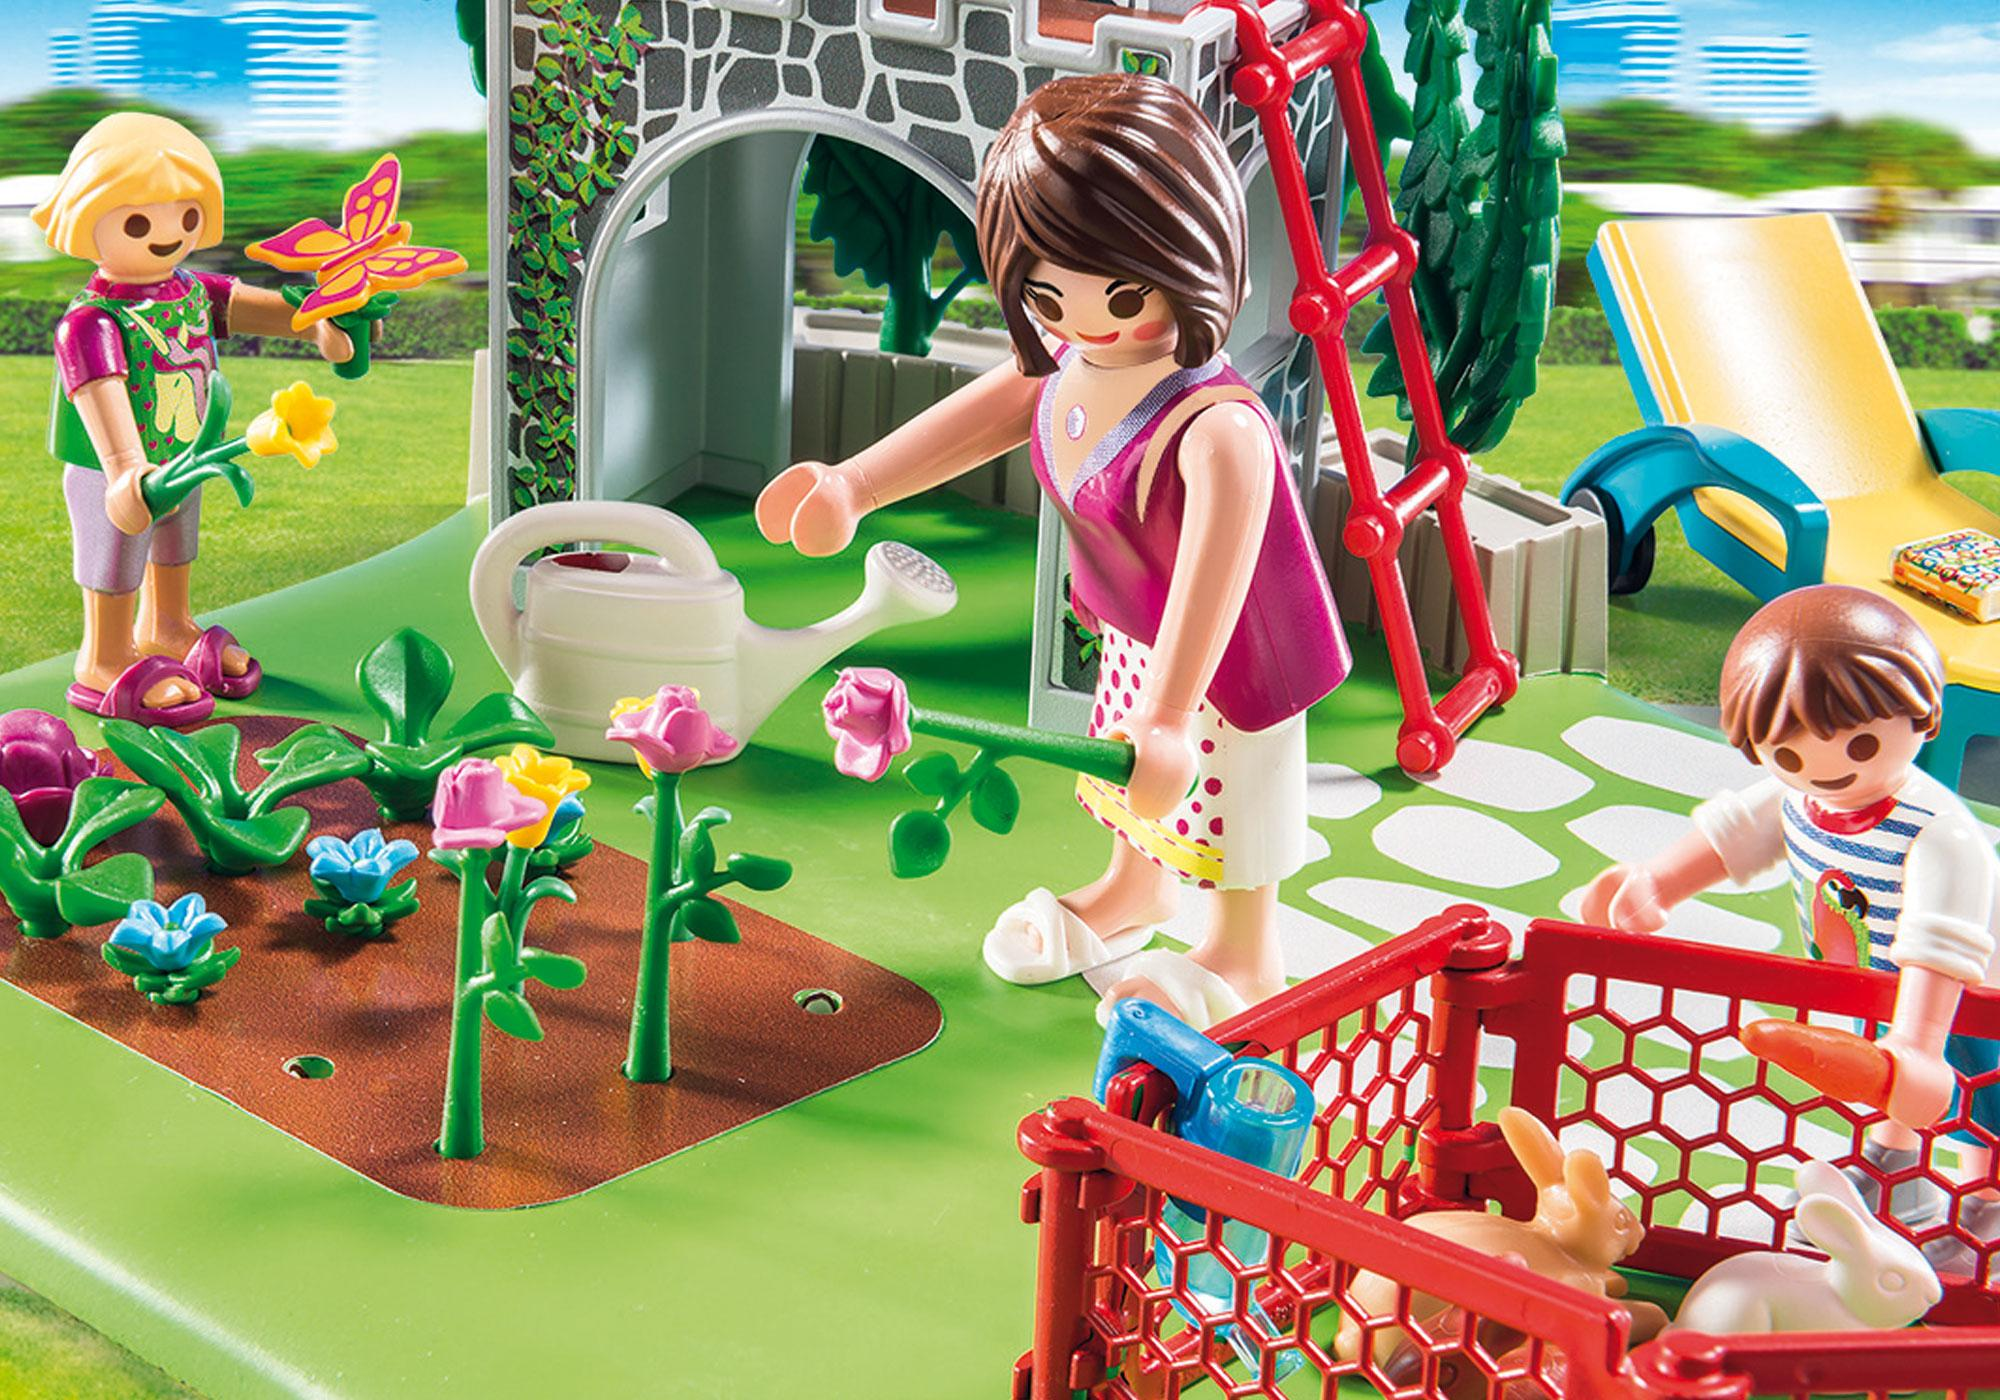 http://media.playmobil.com/i/playmobil/70010_product_extra1/SuperSet Familiengarten